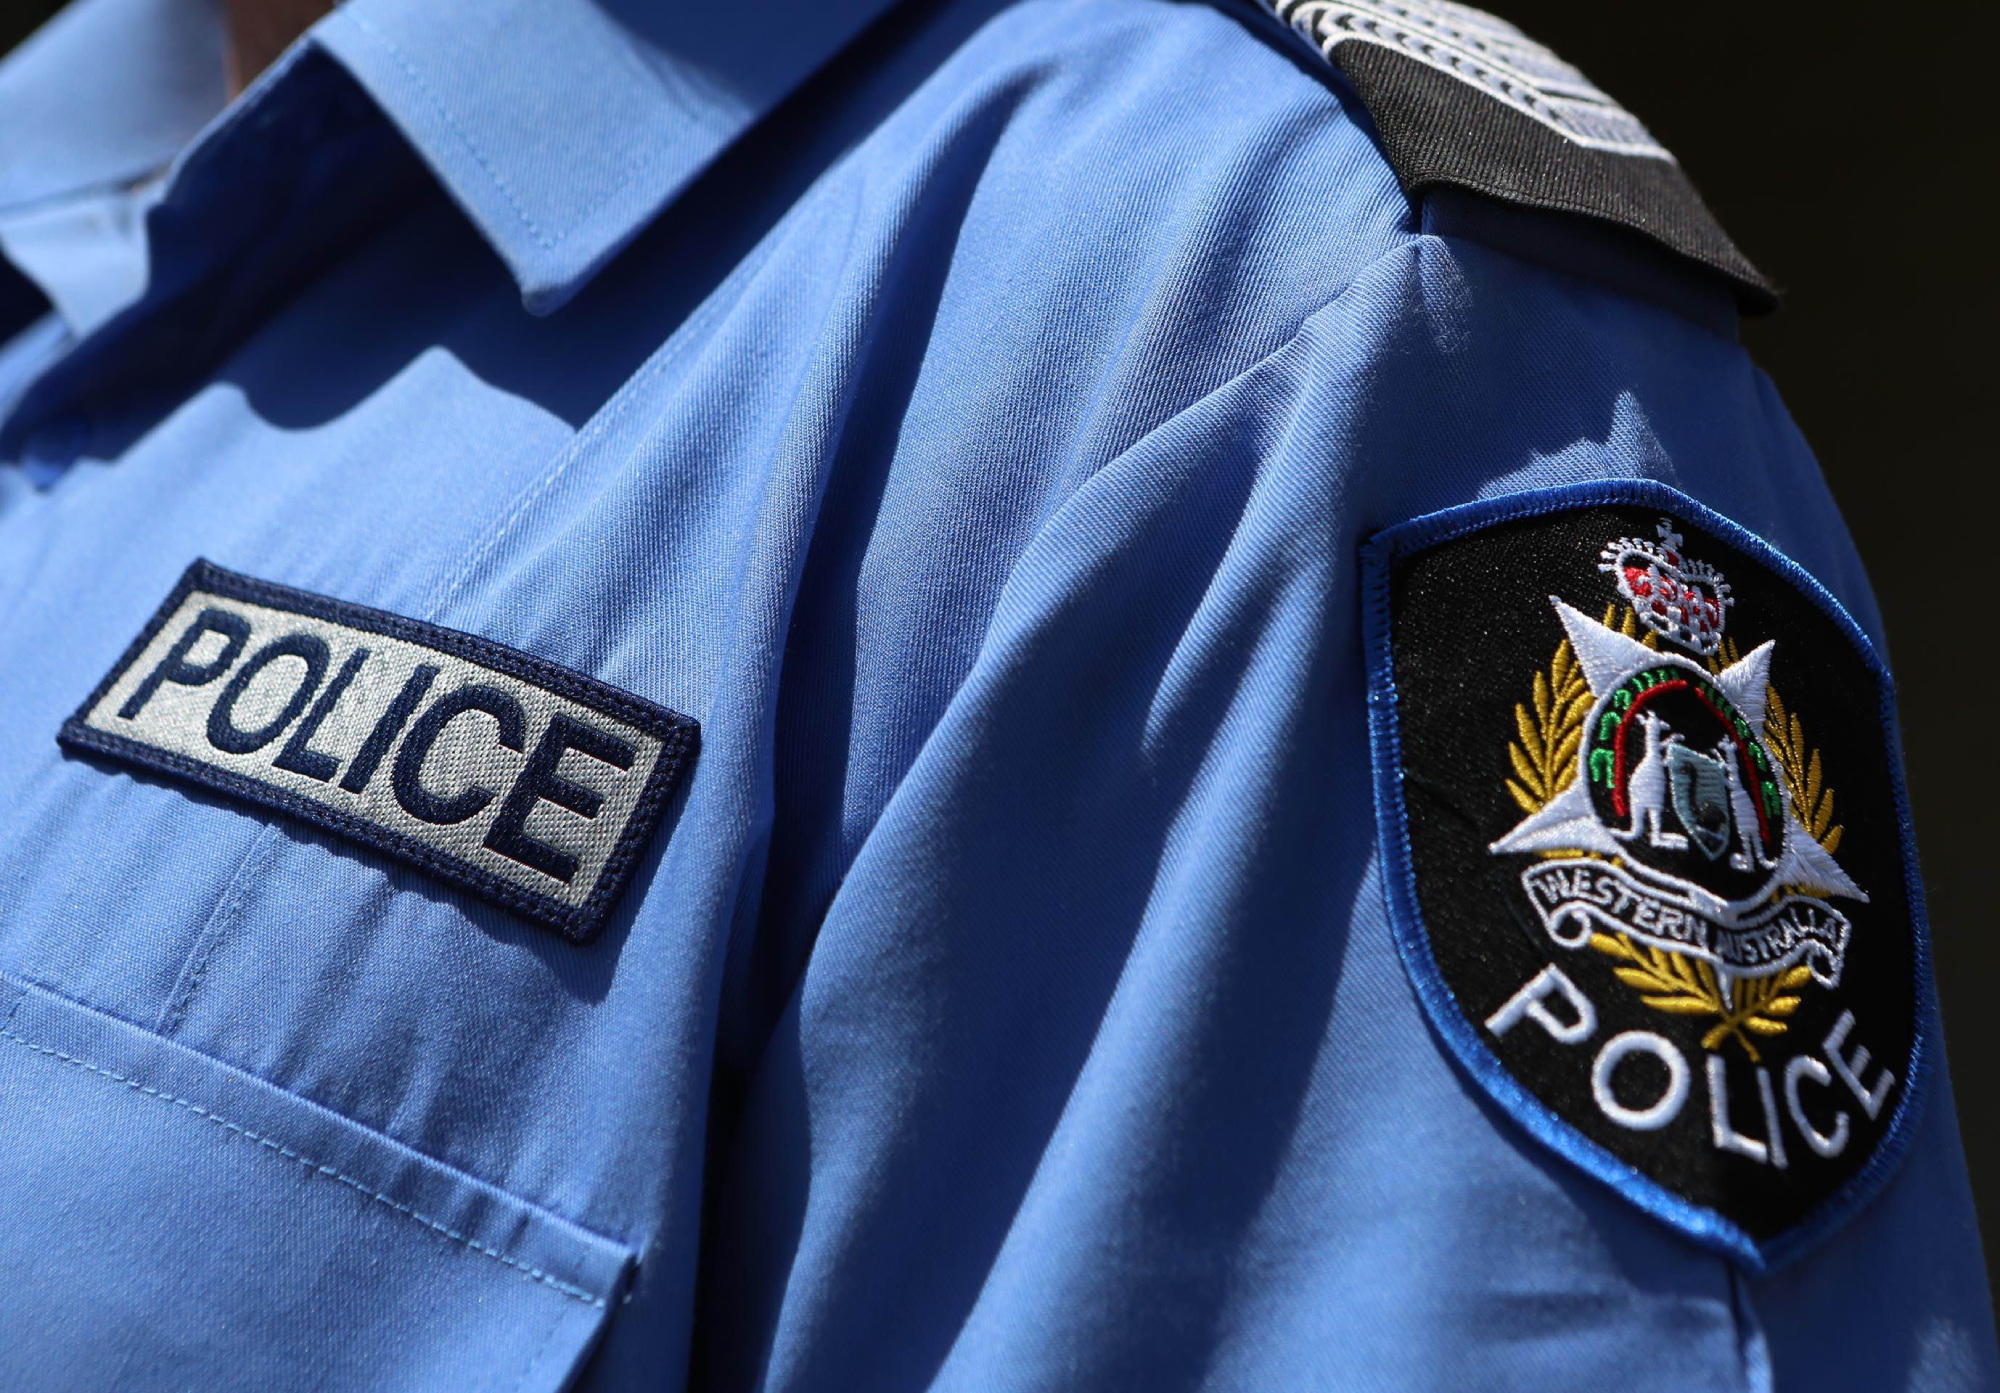 Banksia Grove man charged over alleged attempted stabbing in Balga